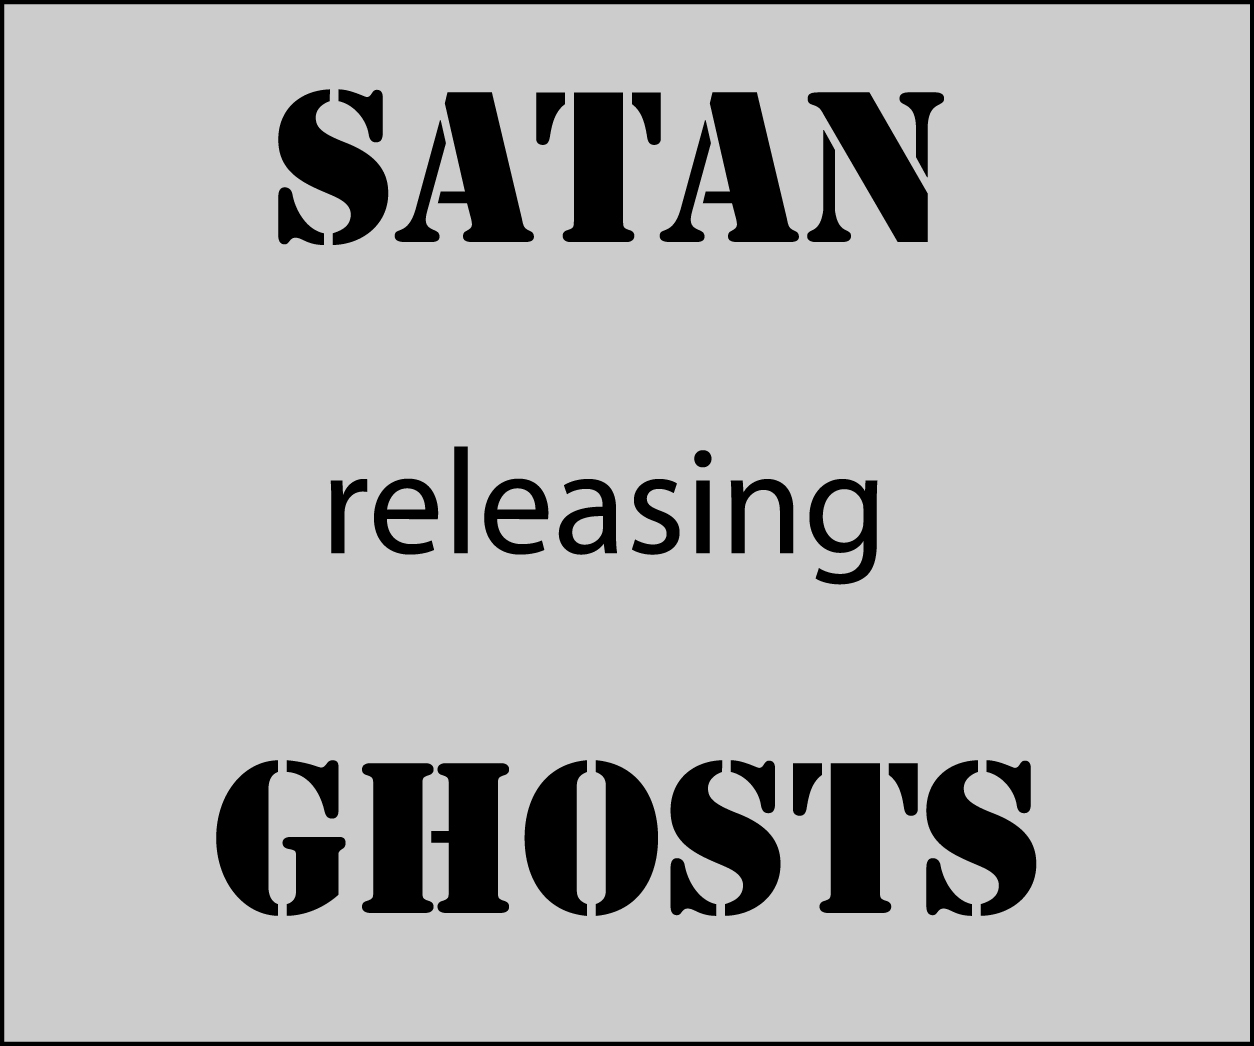 Visions of Satan releasing demons and ghosts with demons mating with humans